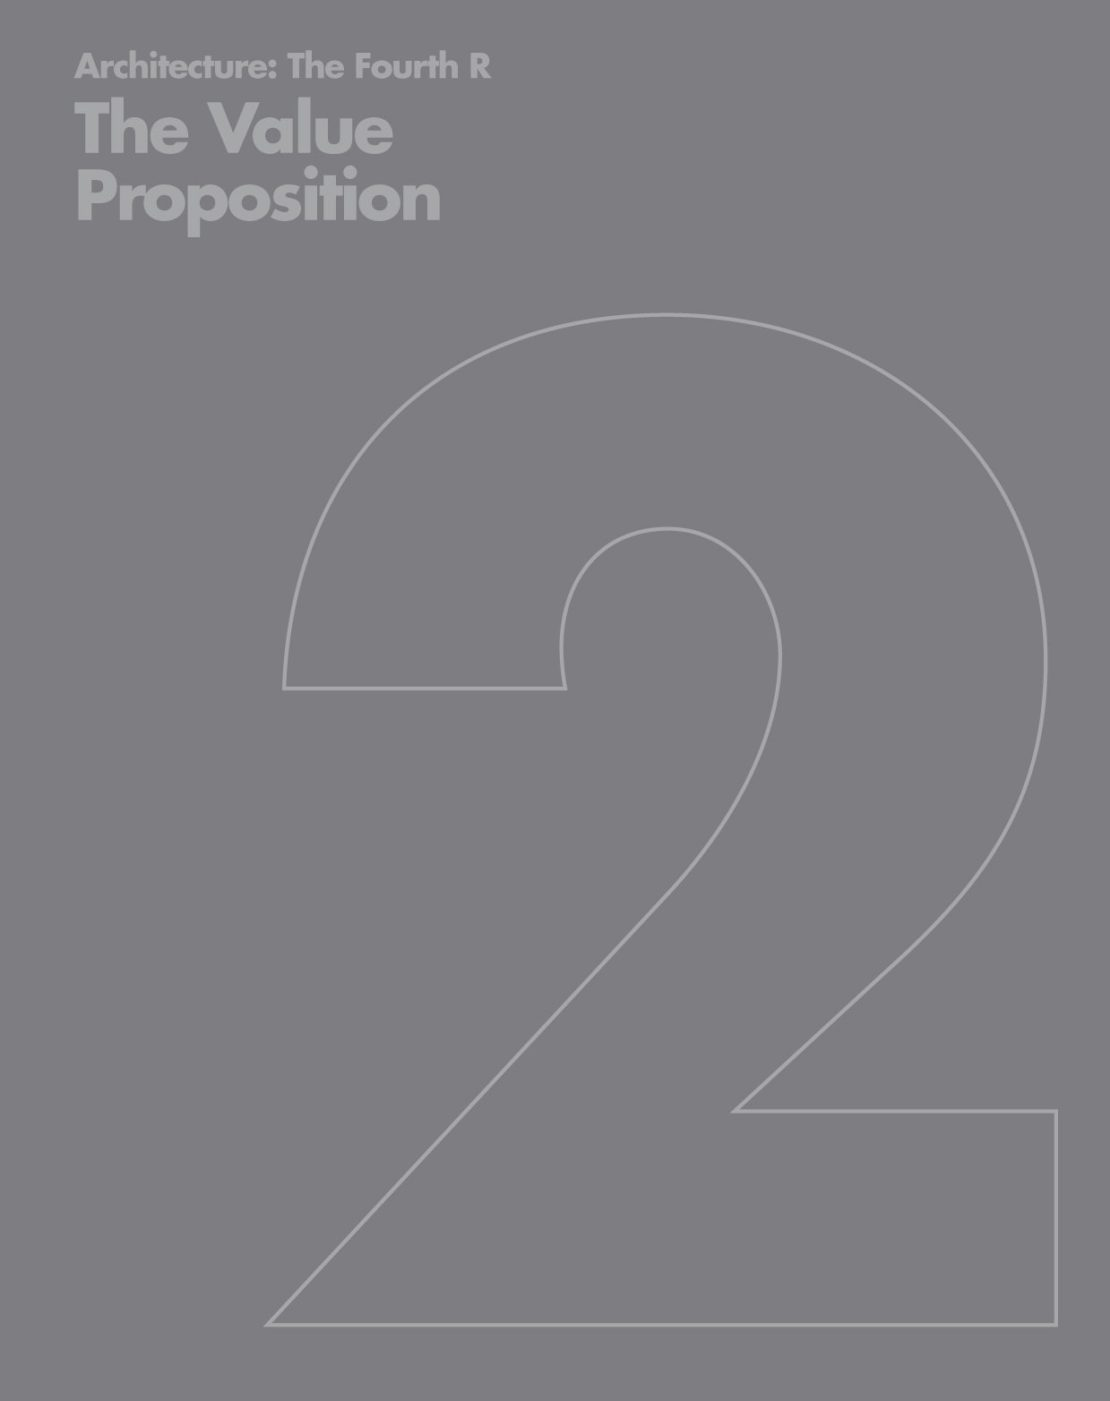 02 The Value Proposition